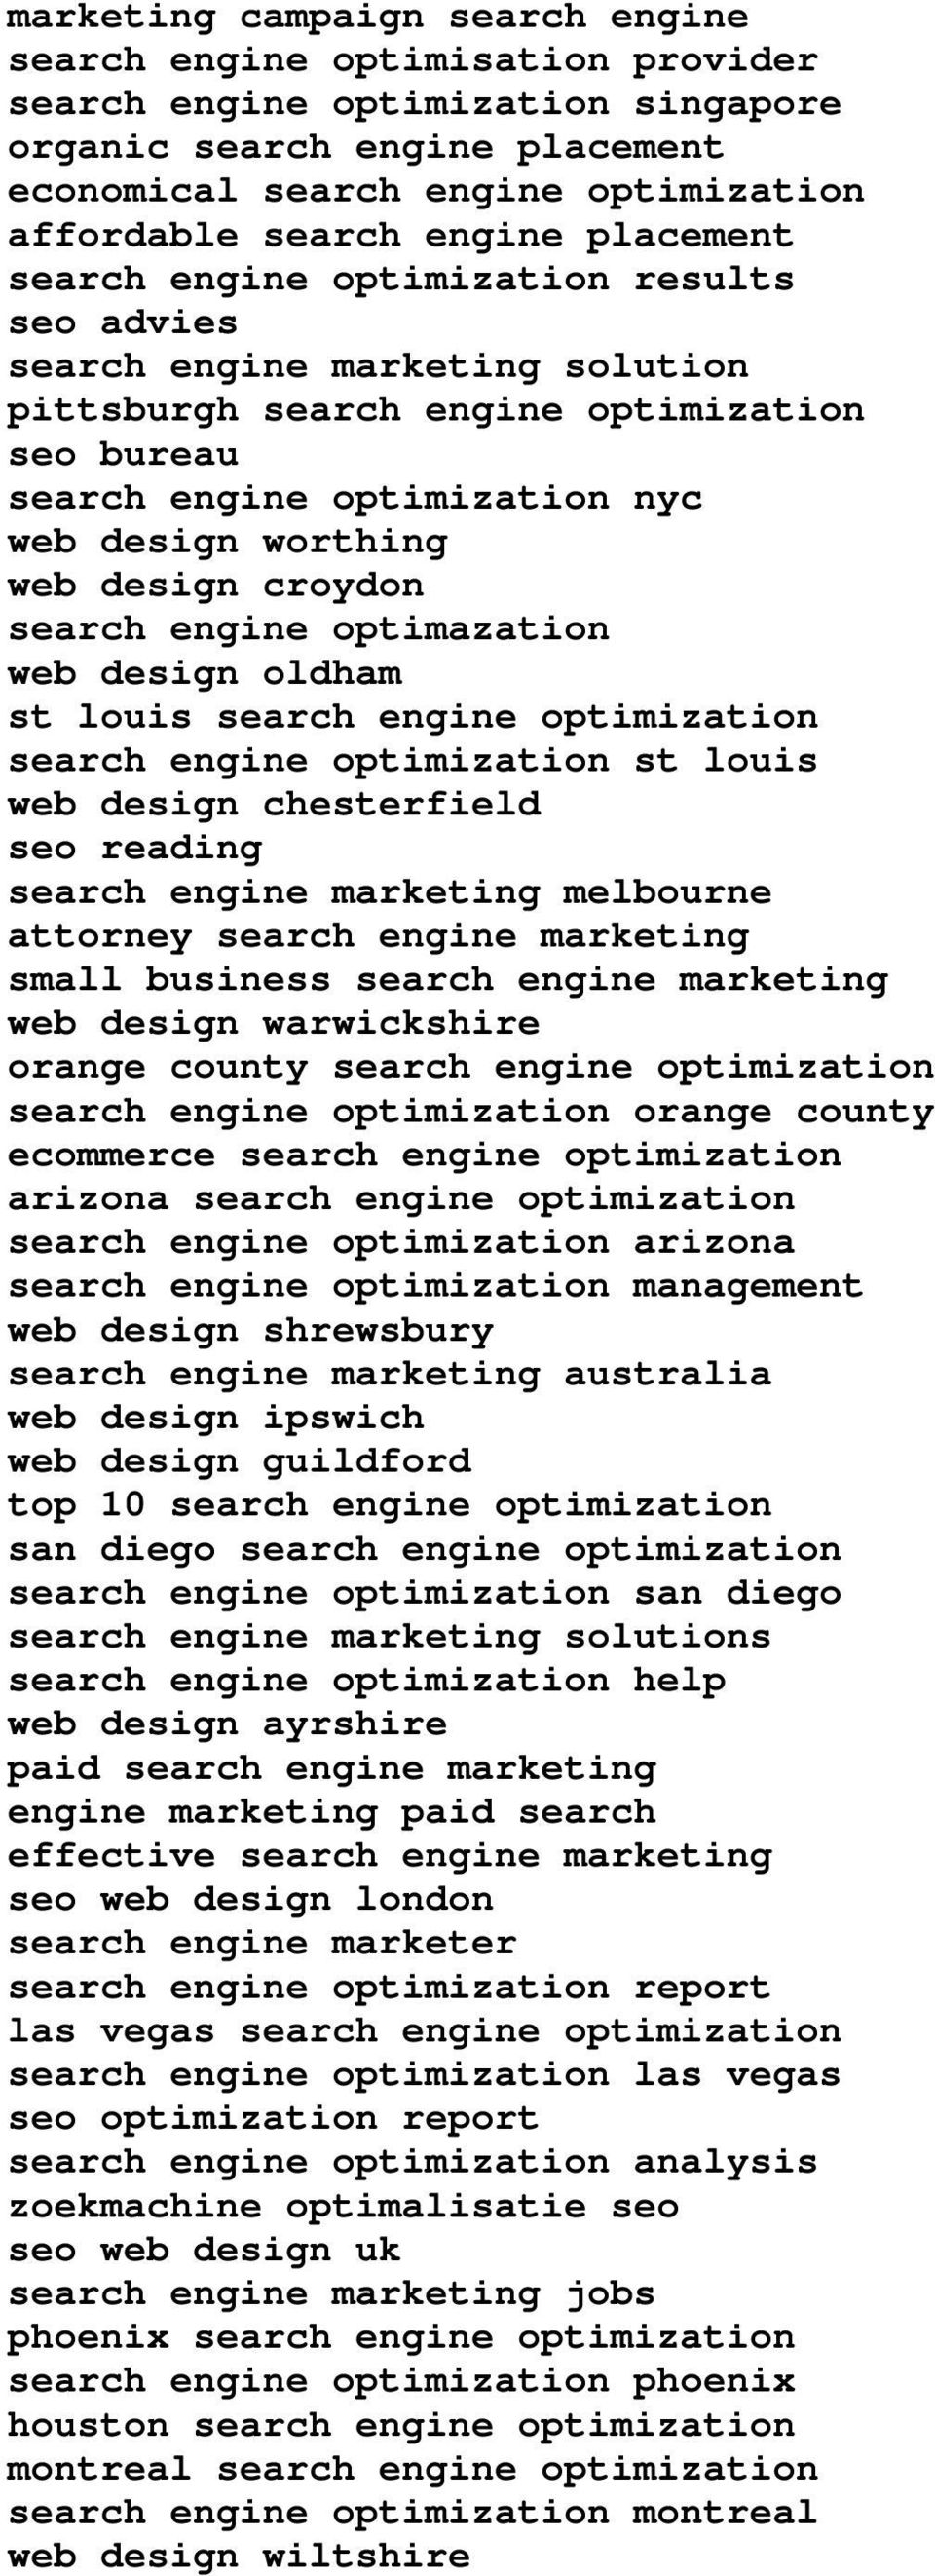 design croydon search engine optimazation web design oldham st louis search engine optimization search engine optimization st louis web design chesterfield seo reading search engine marketing